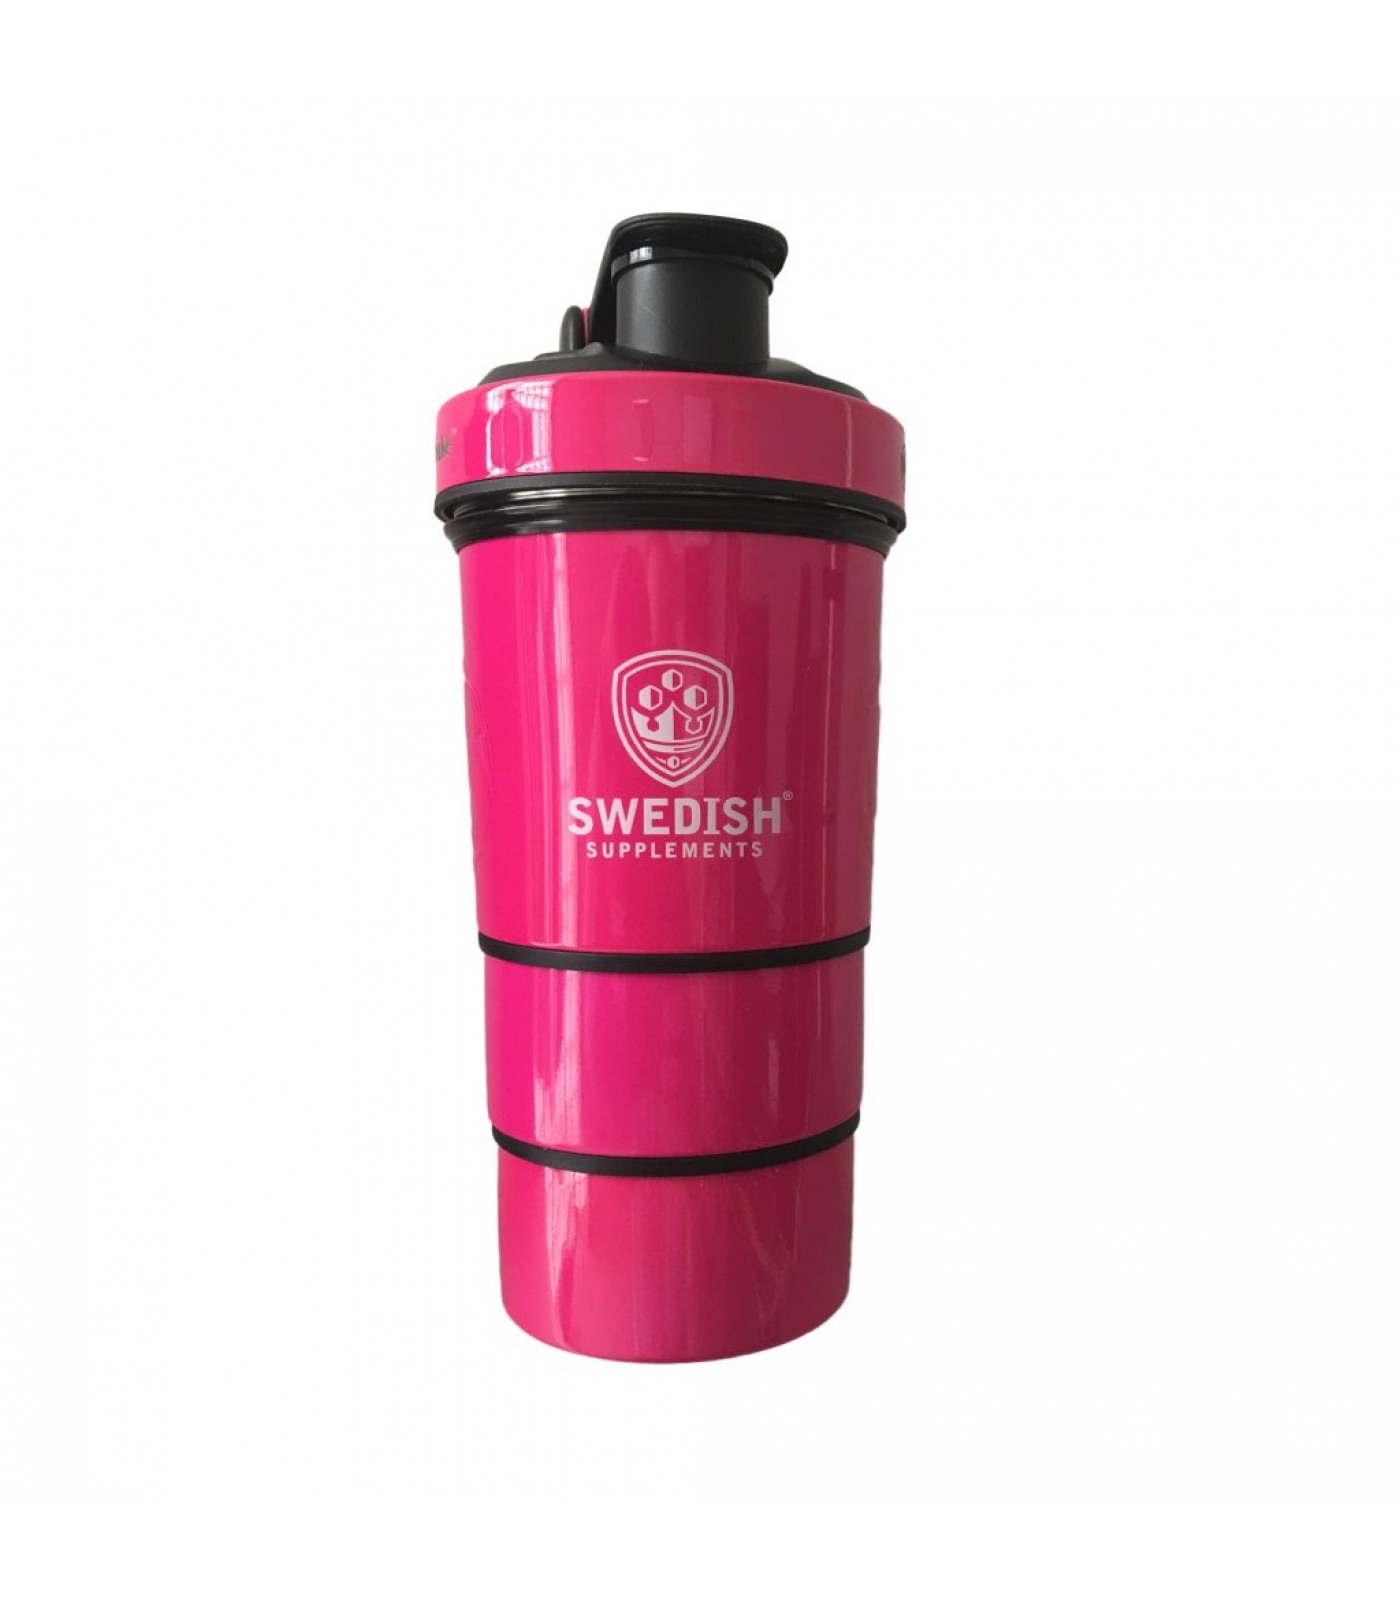 SWEDISH Supplements - Metal Shaker / SWEDISH Smart Shaker with Ice Puck - Pink